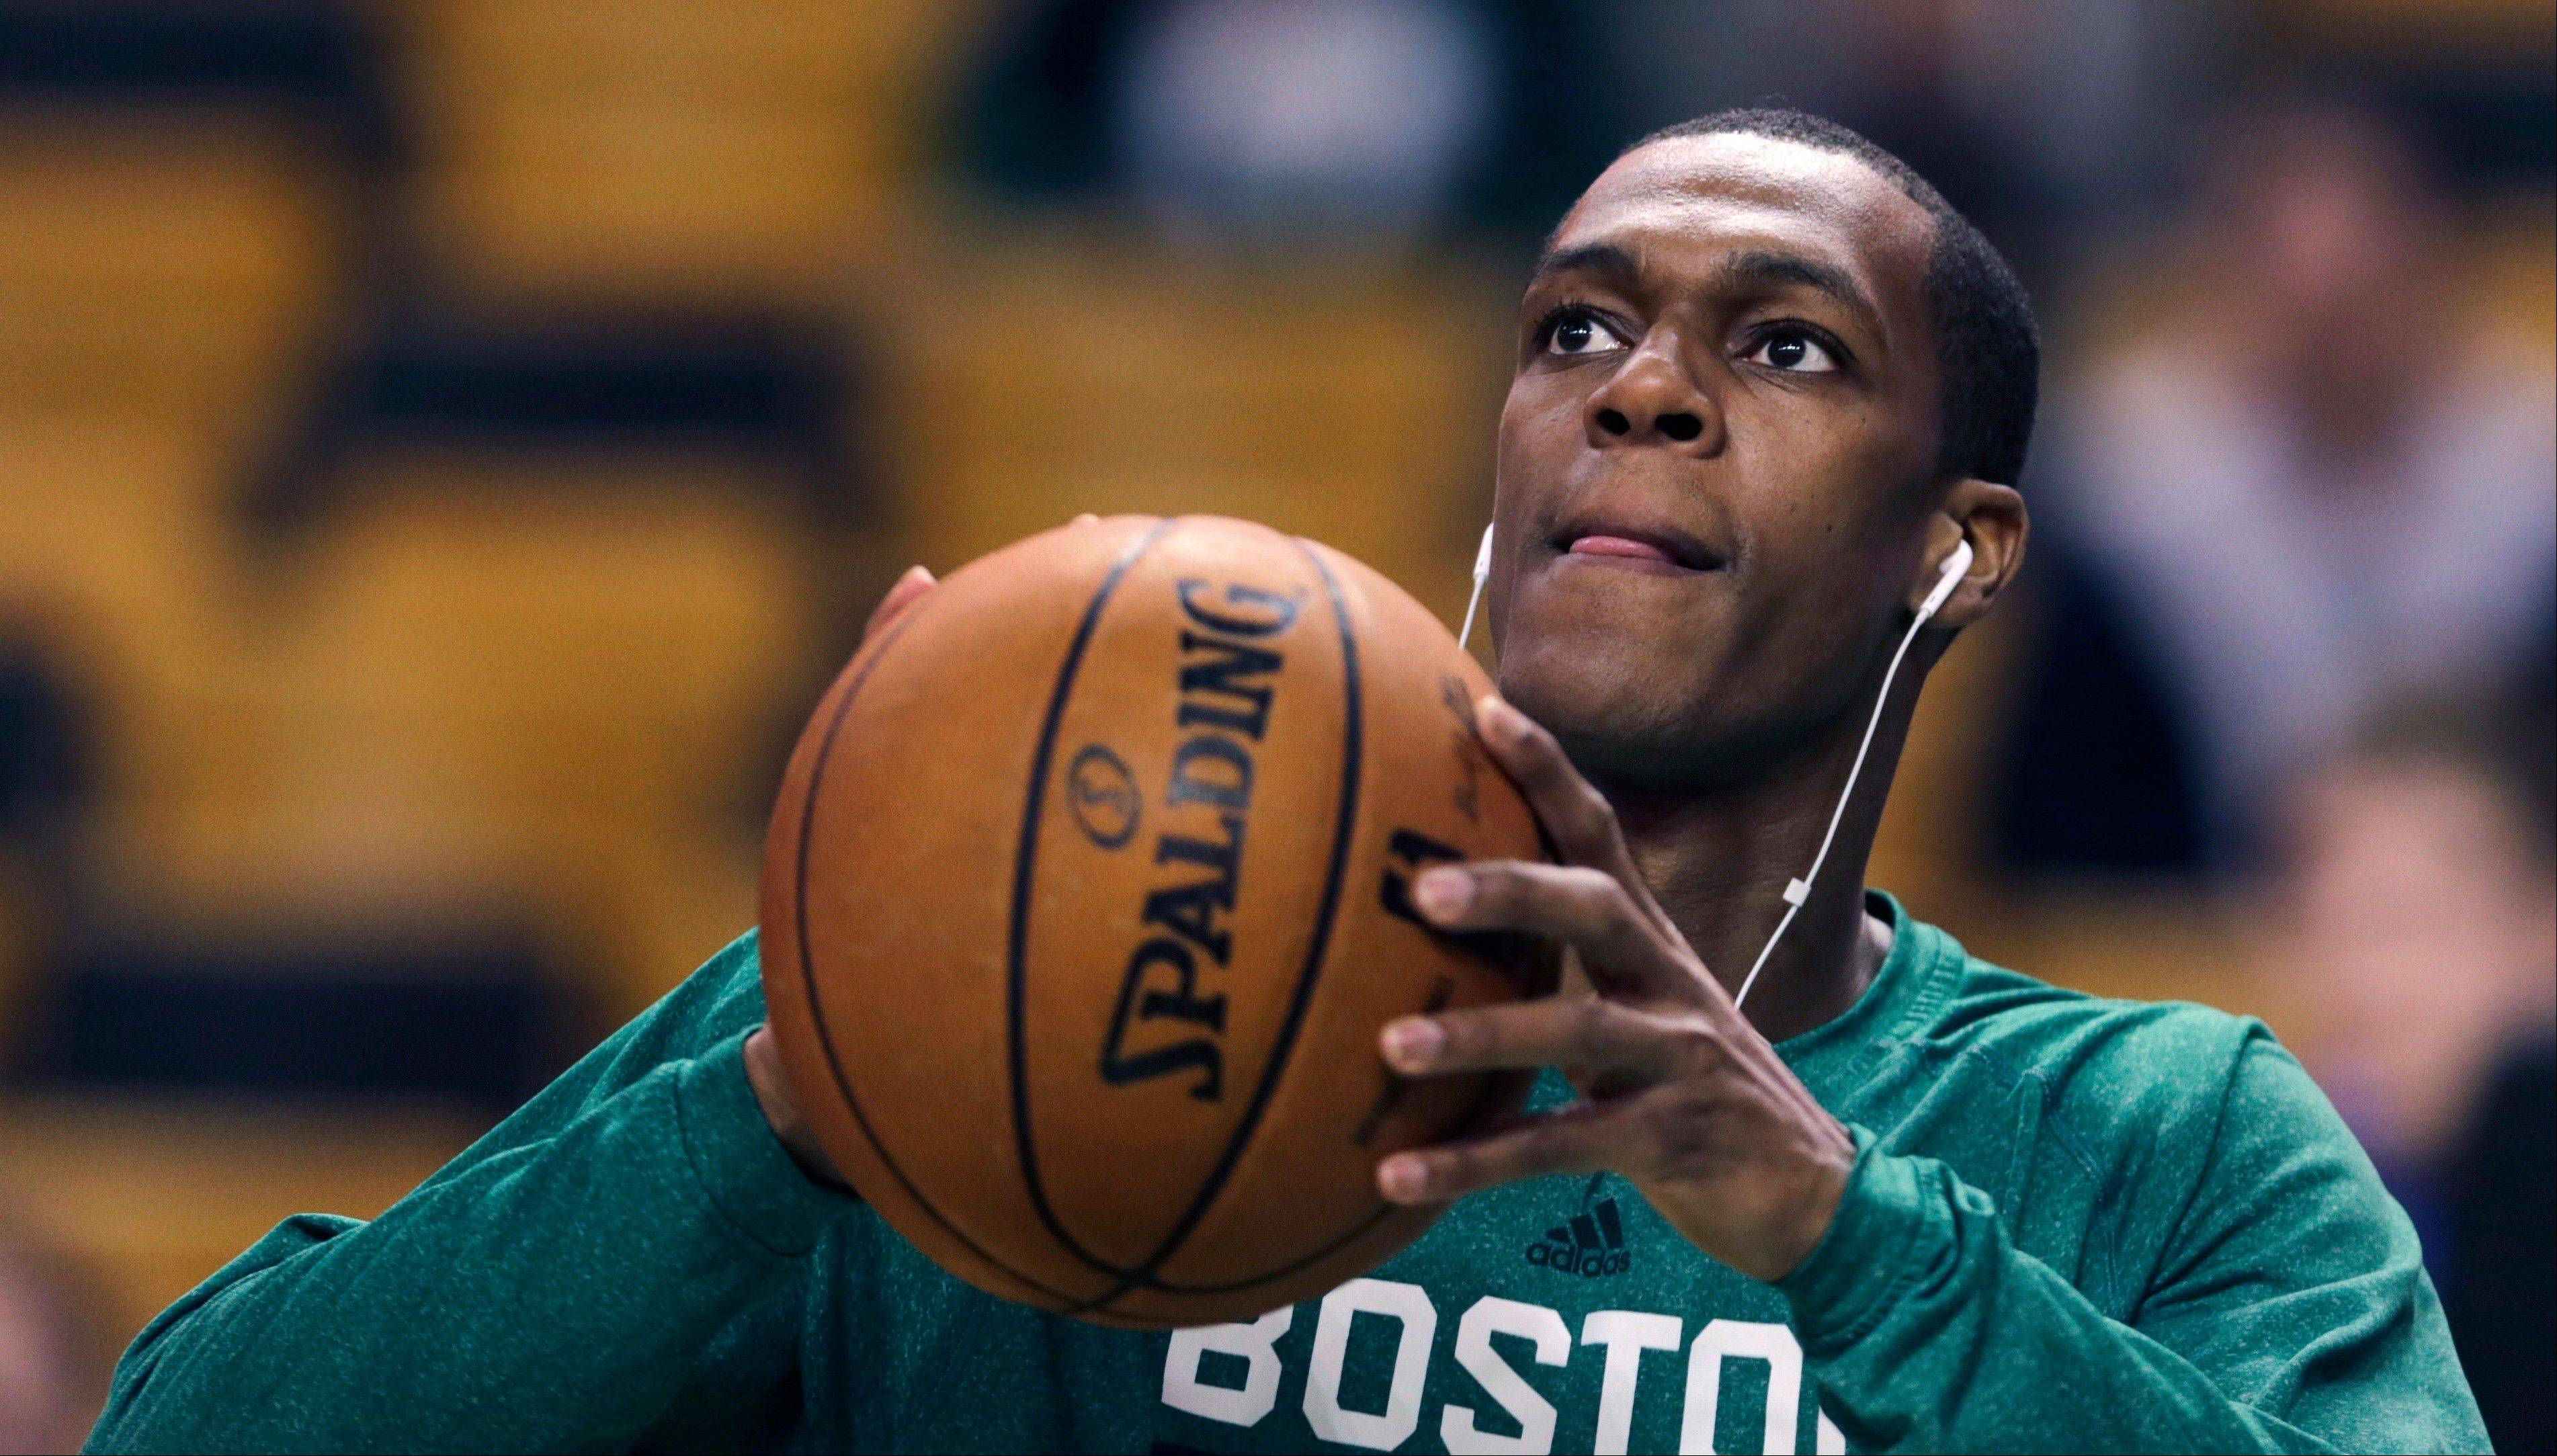 Boston Celtics guard Rajon Rondo takes a shot prior to the Celtics' NBA basketball game against the Toronto Raptors, in Boston on Wednesday, Jan. 15, 2014. Rondo took a step toward returning to action on Wednesday, working out with members of Boston's NBA Development League team at the Celtics' practice facility earlier in the day.